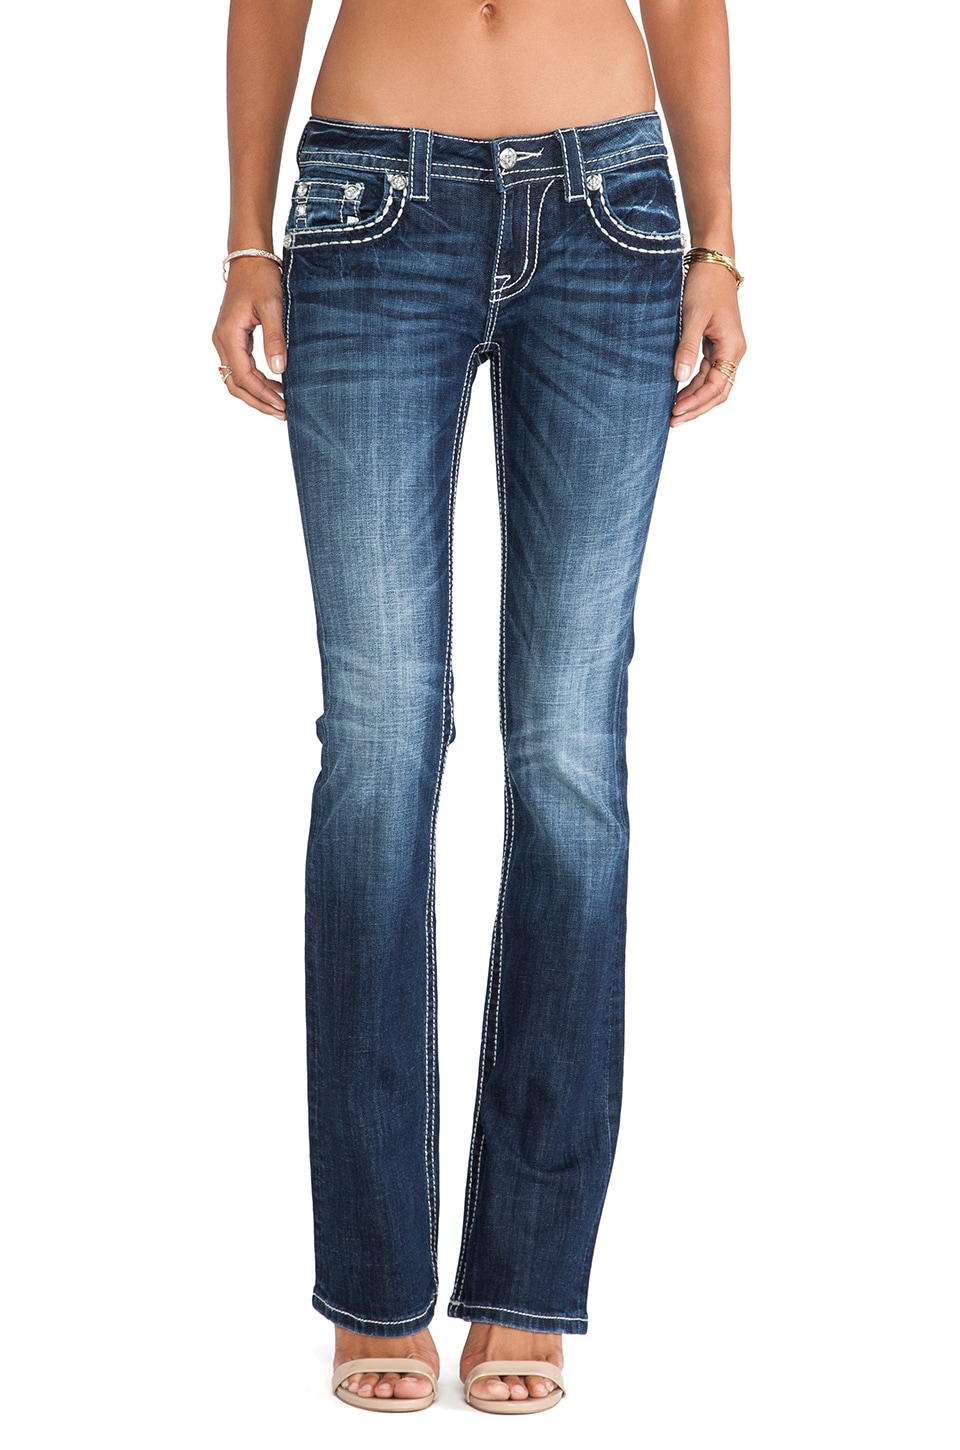 Miss Me Jeans Boot in MK 322